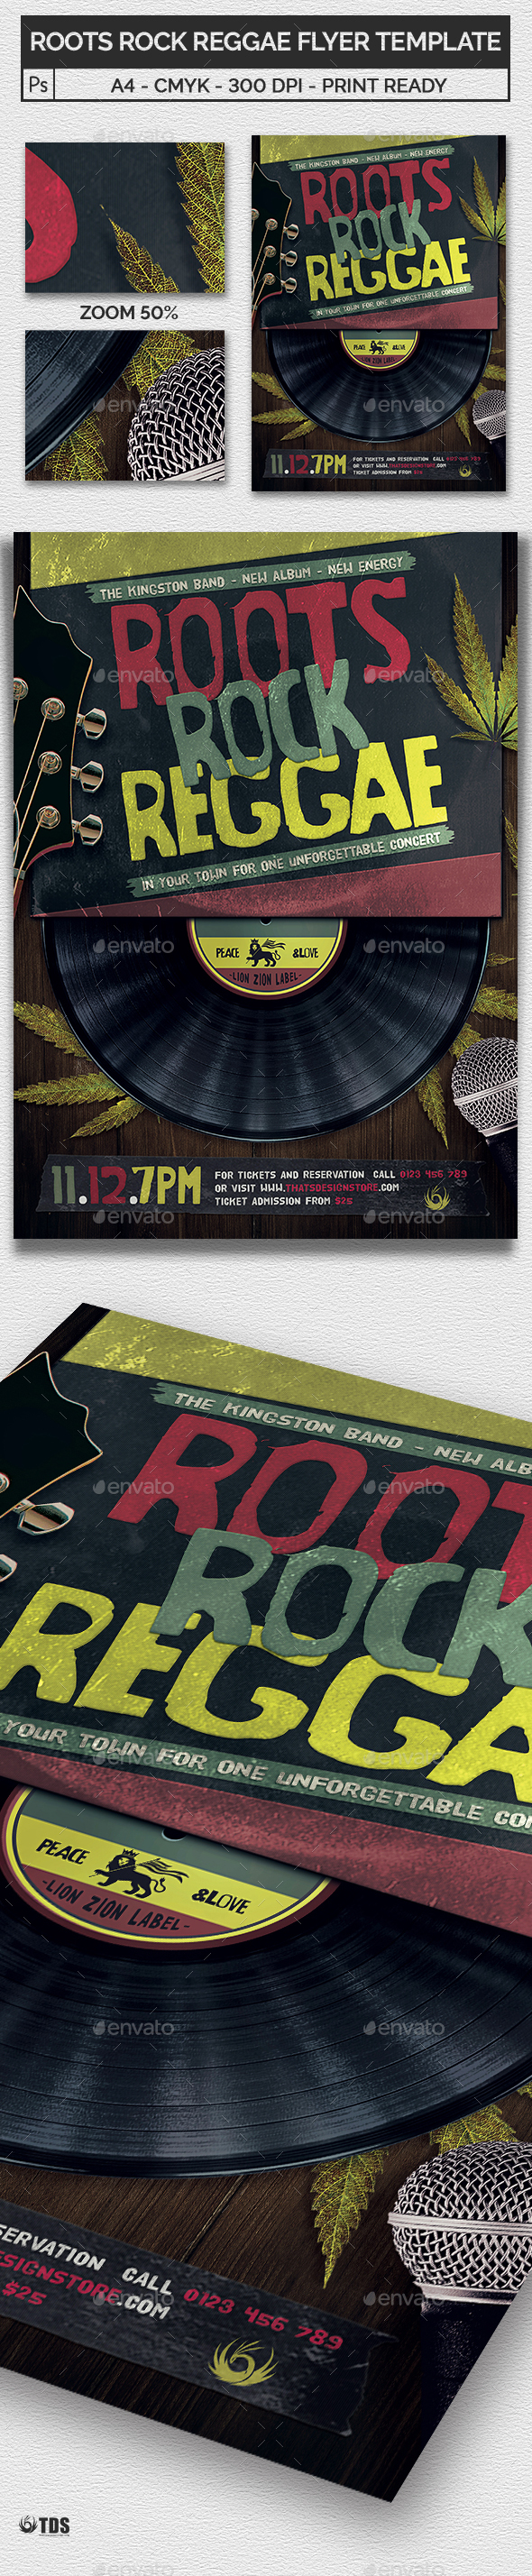 Roots Rock Reggae Flyer Template - Concerts Events